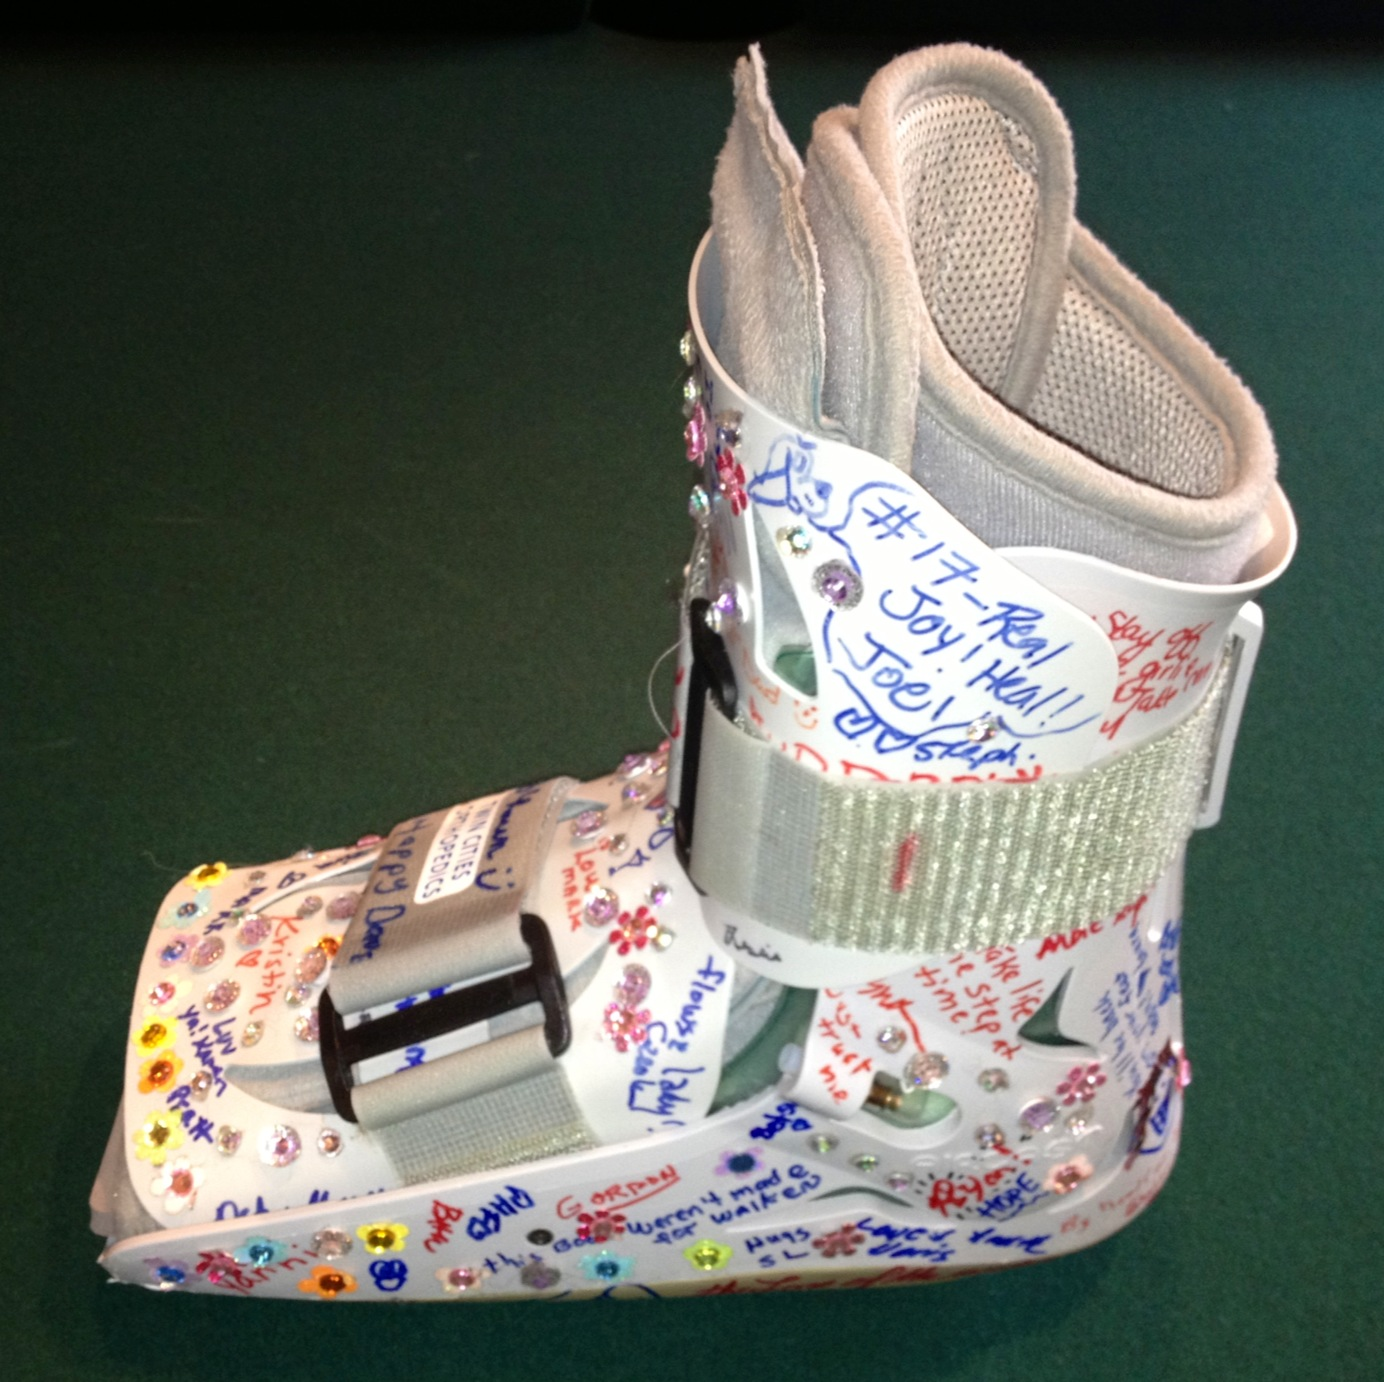 Bejeweled lisfranc recovery boot